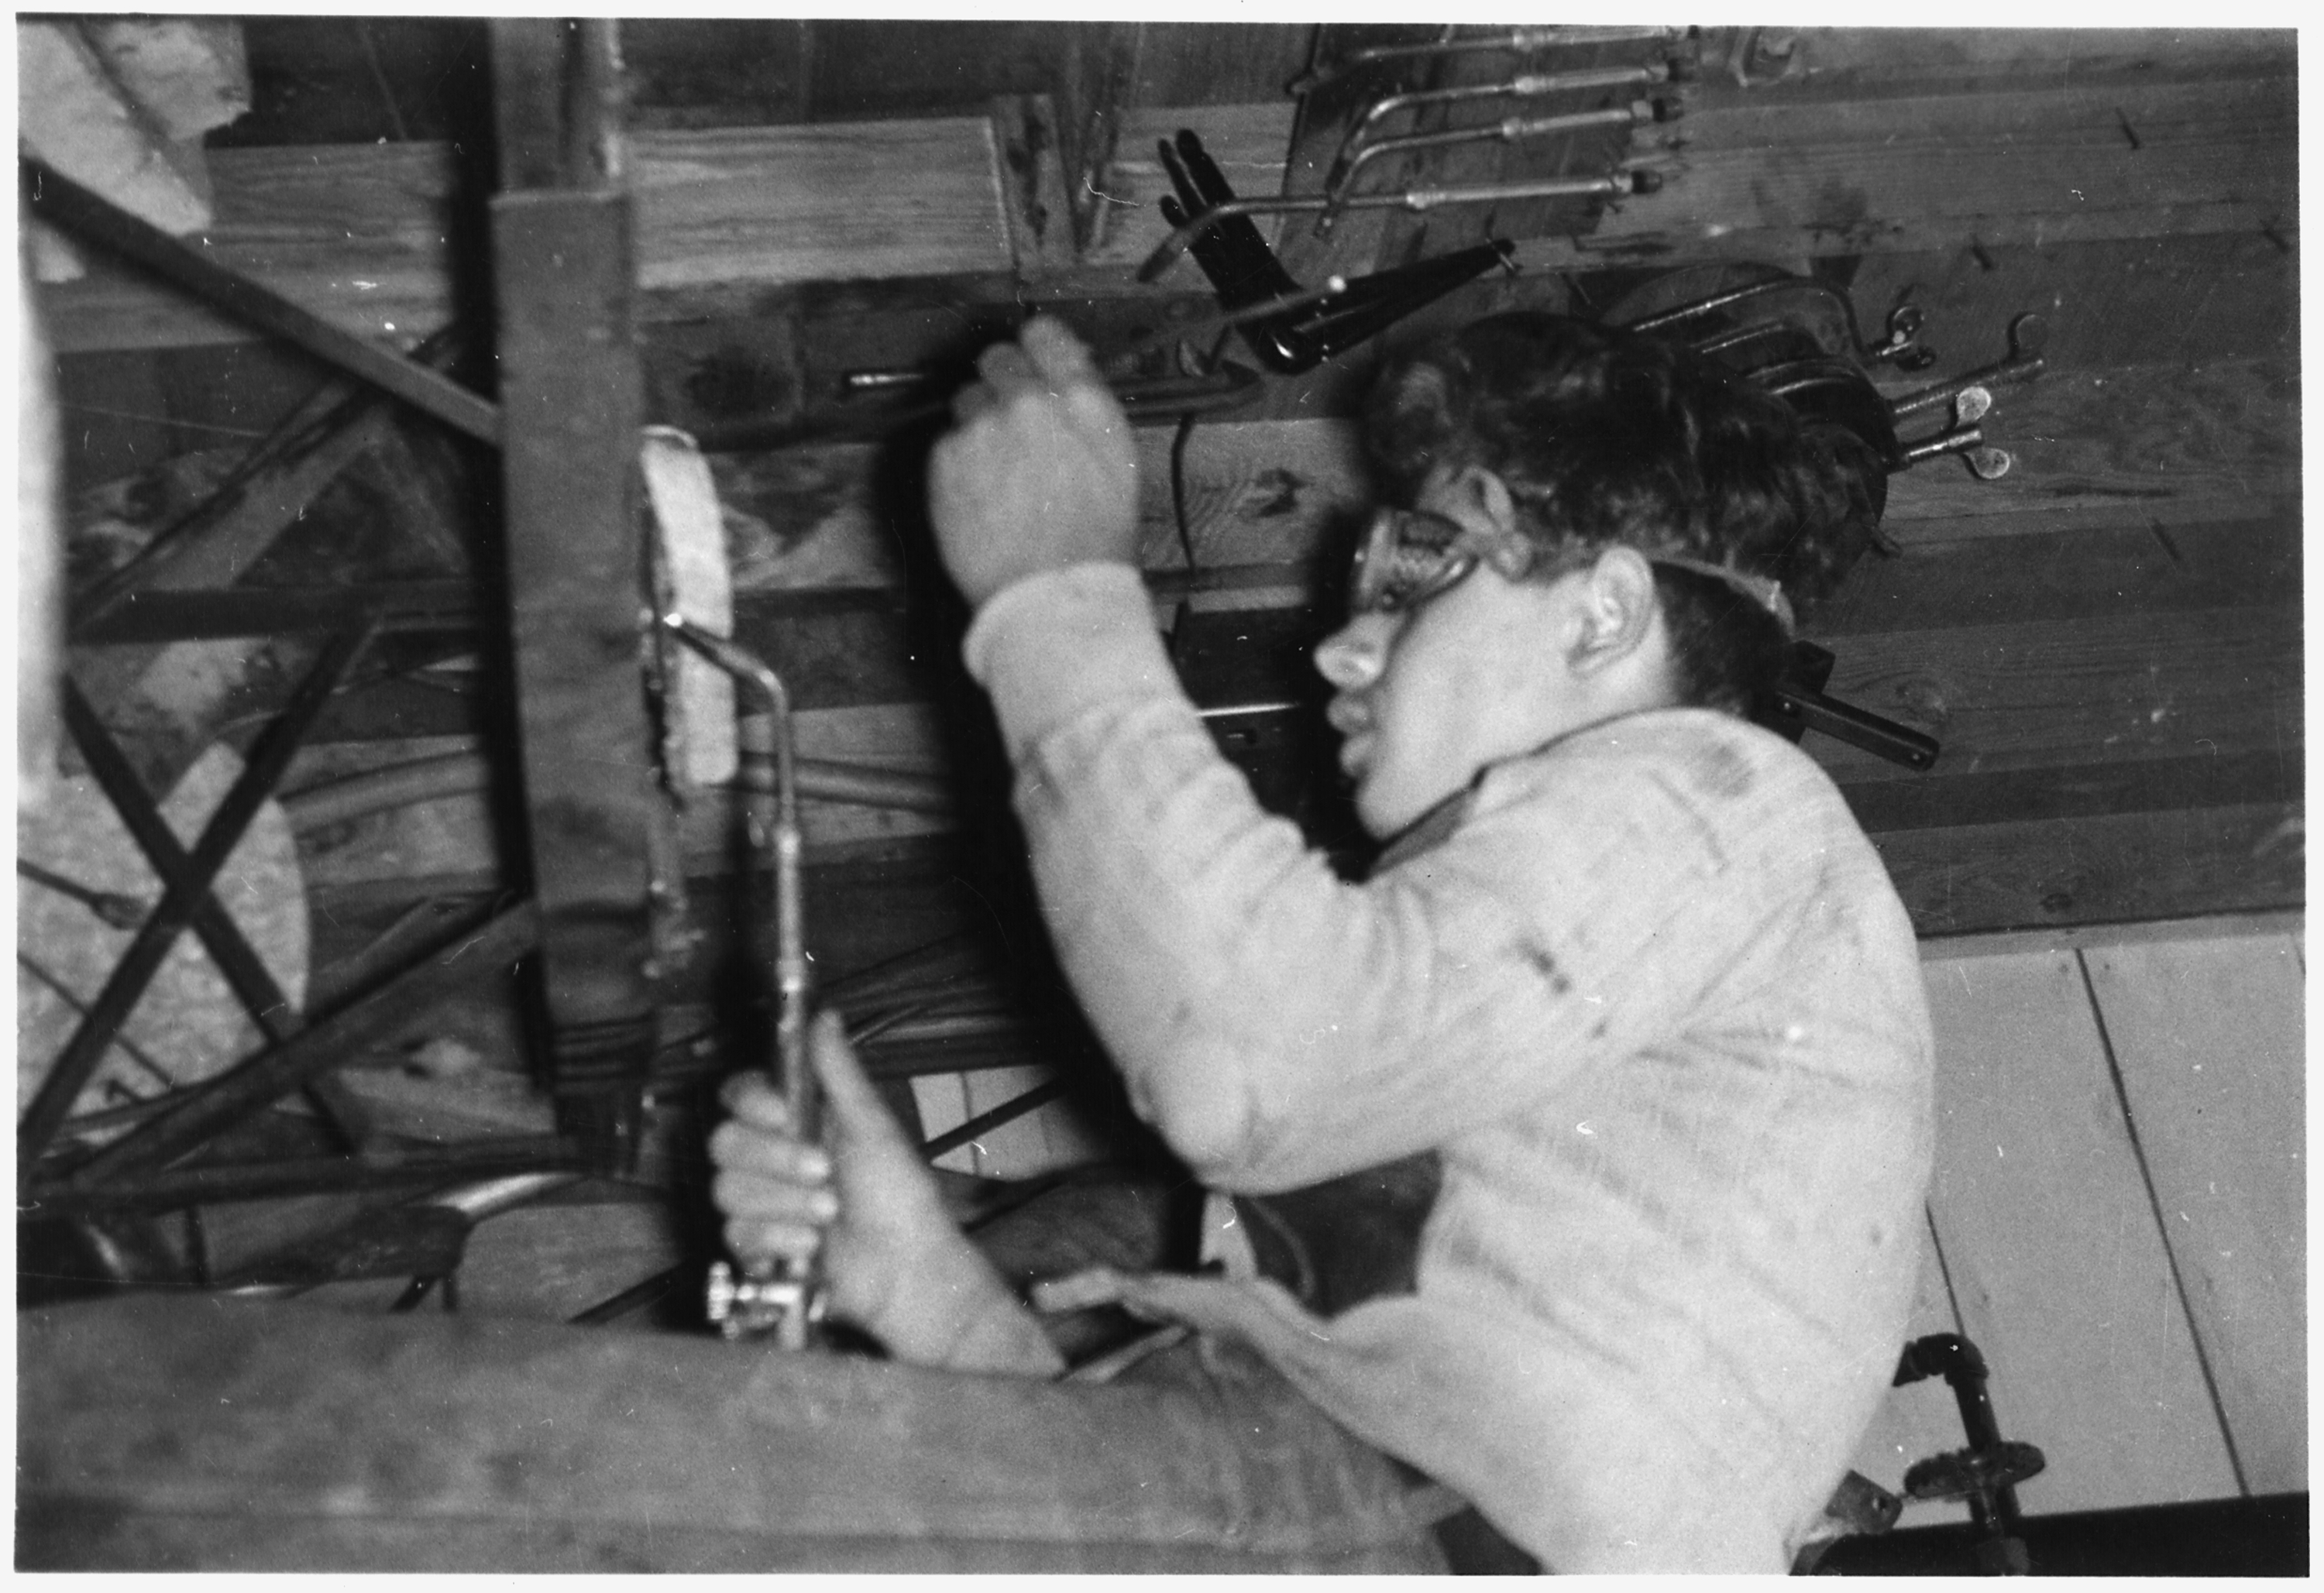 history of welding History of welding william barker timeline welding is a method of repairing or creating metal structures by joining the pieces of metals or plastic through various fusion processes generally, heat is used to weld the materials.